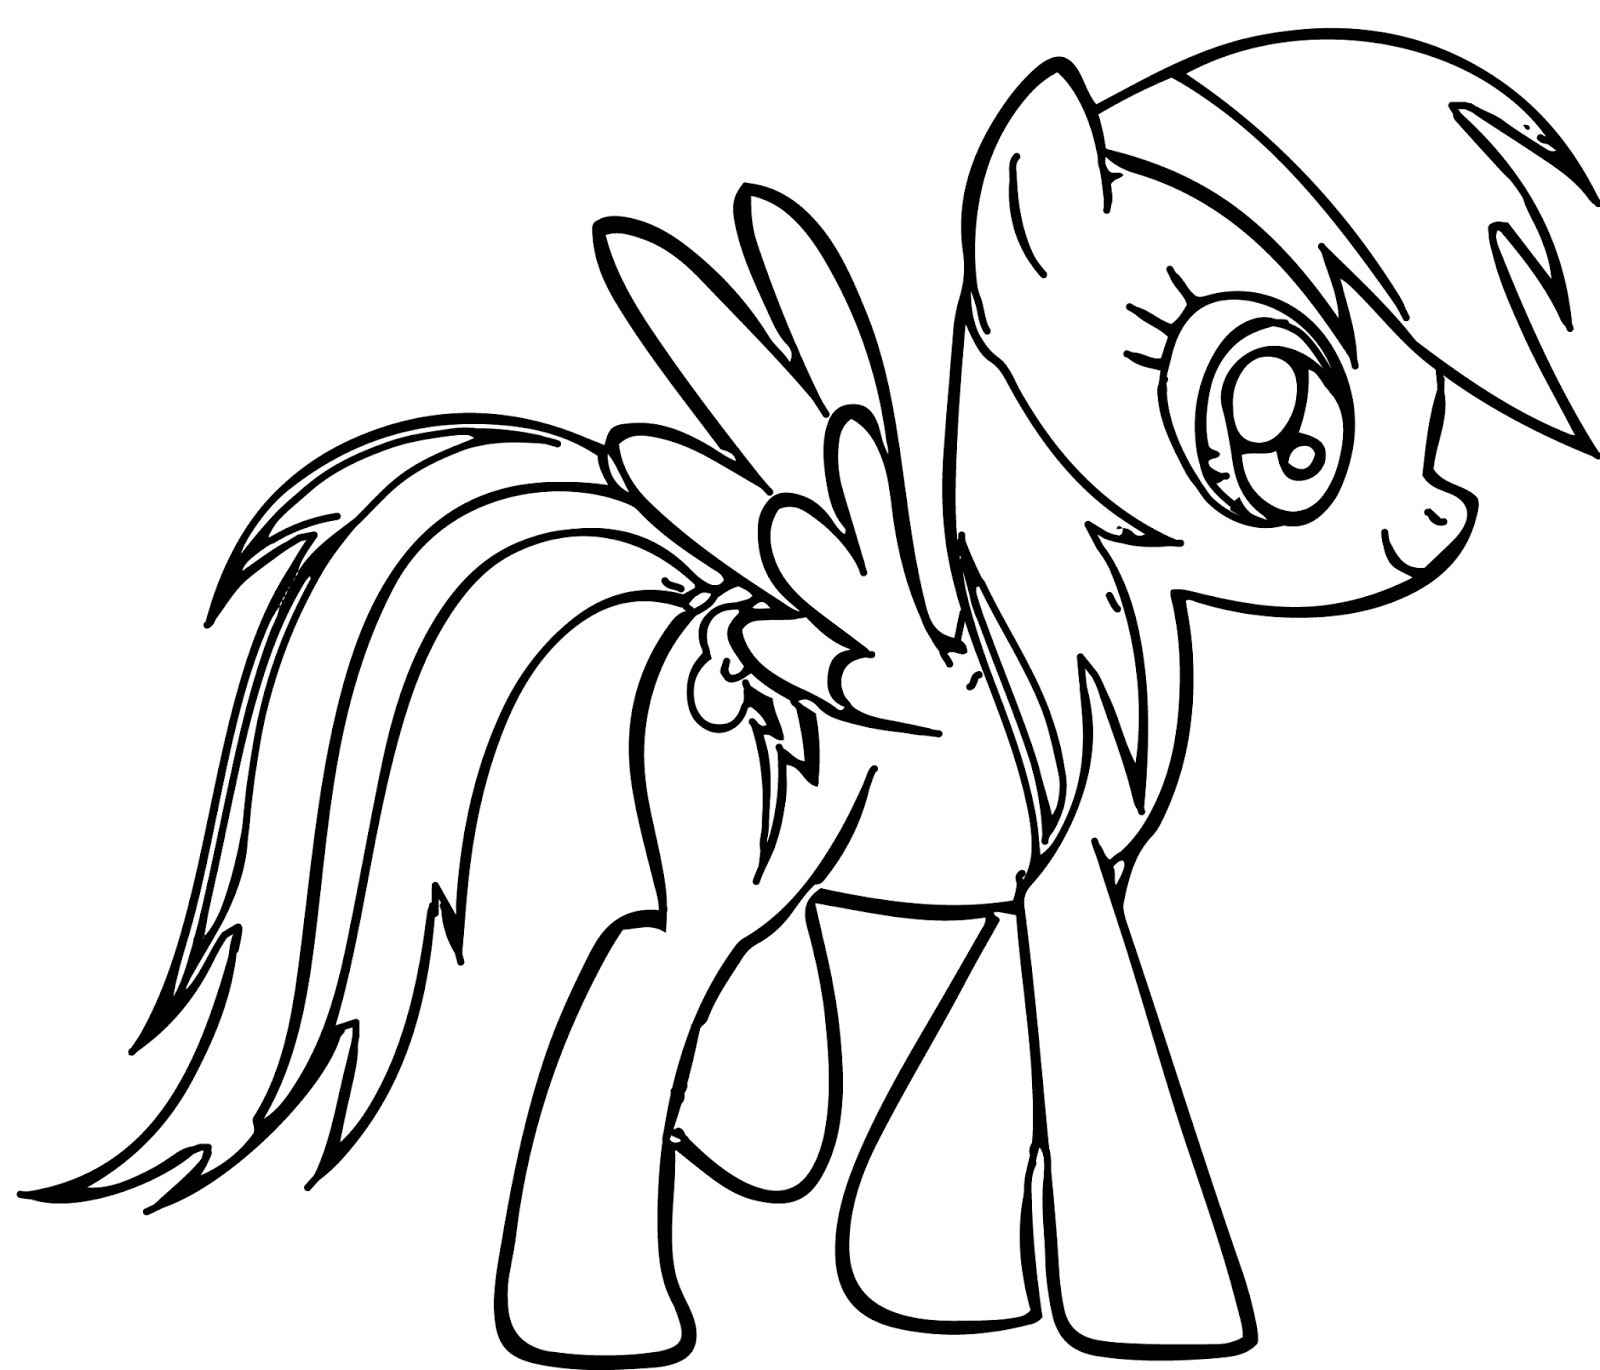 Printable My Little Pony Coloring Pages Coloring Me Coloring Pages For My Pony Rainbow Dash